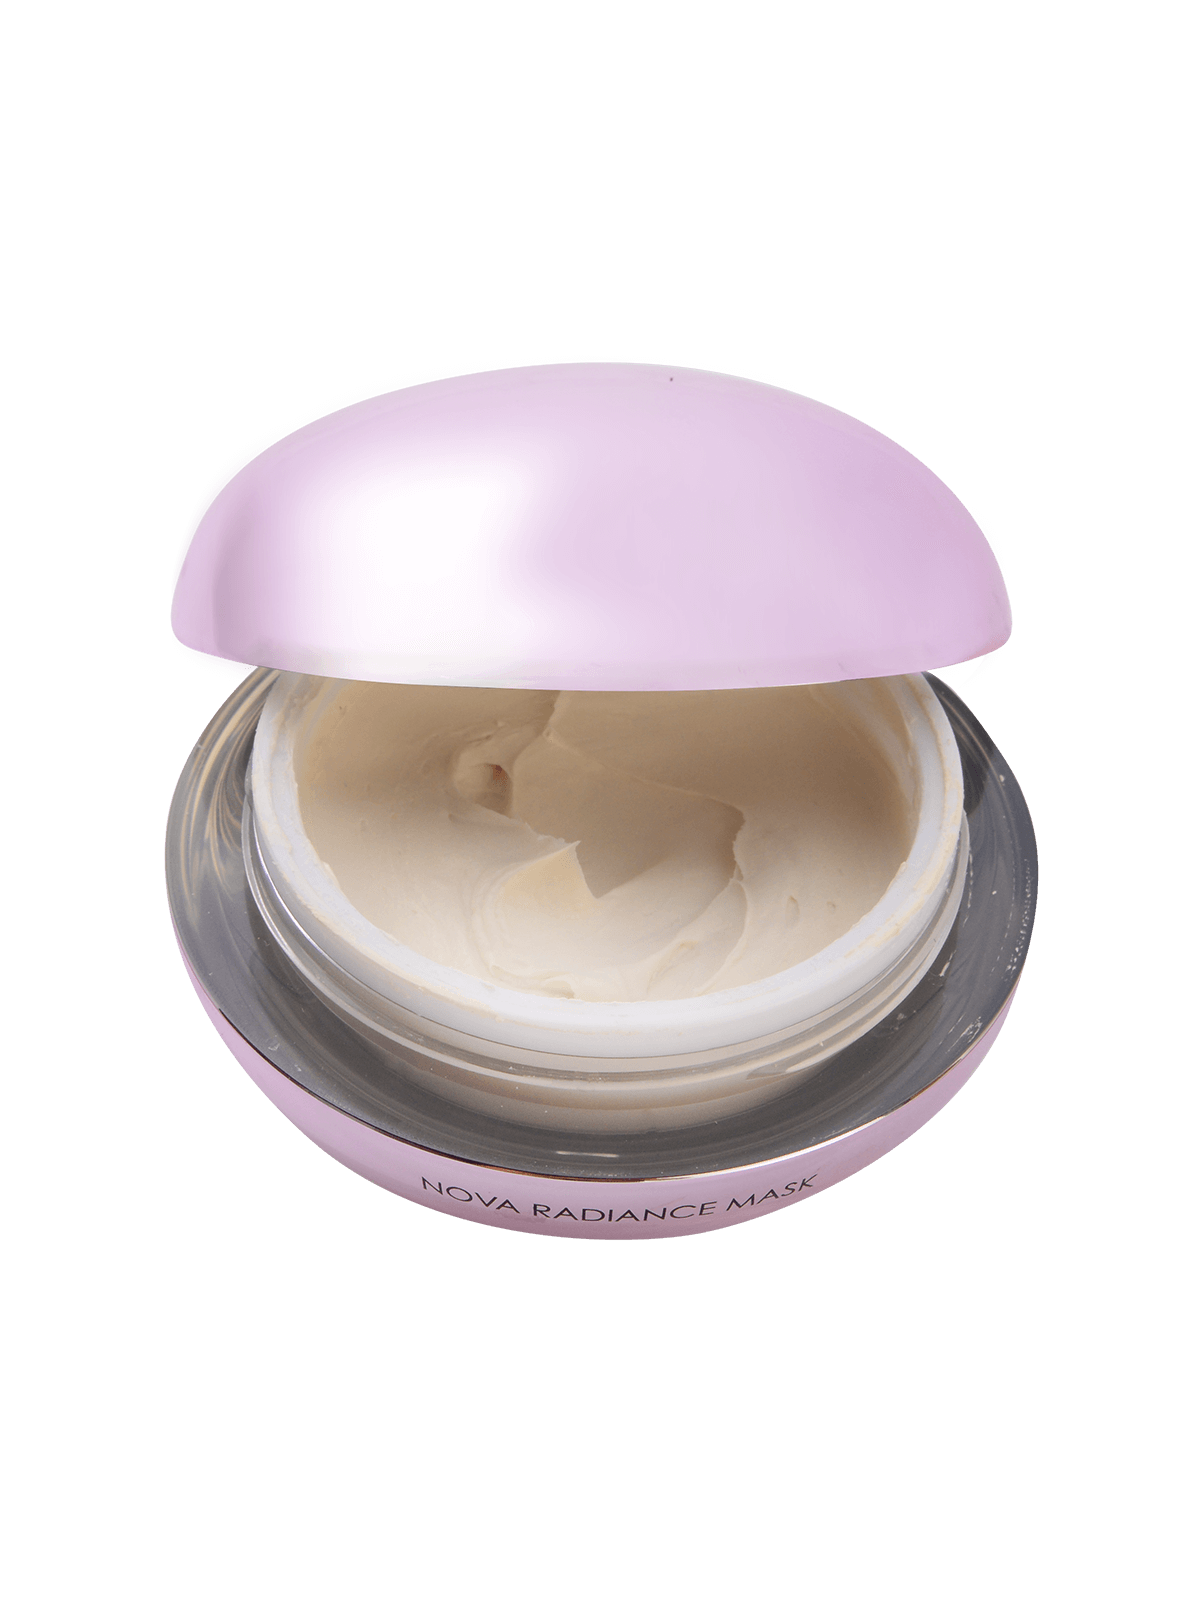 Nova Radiance Mask open lid